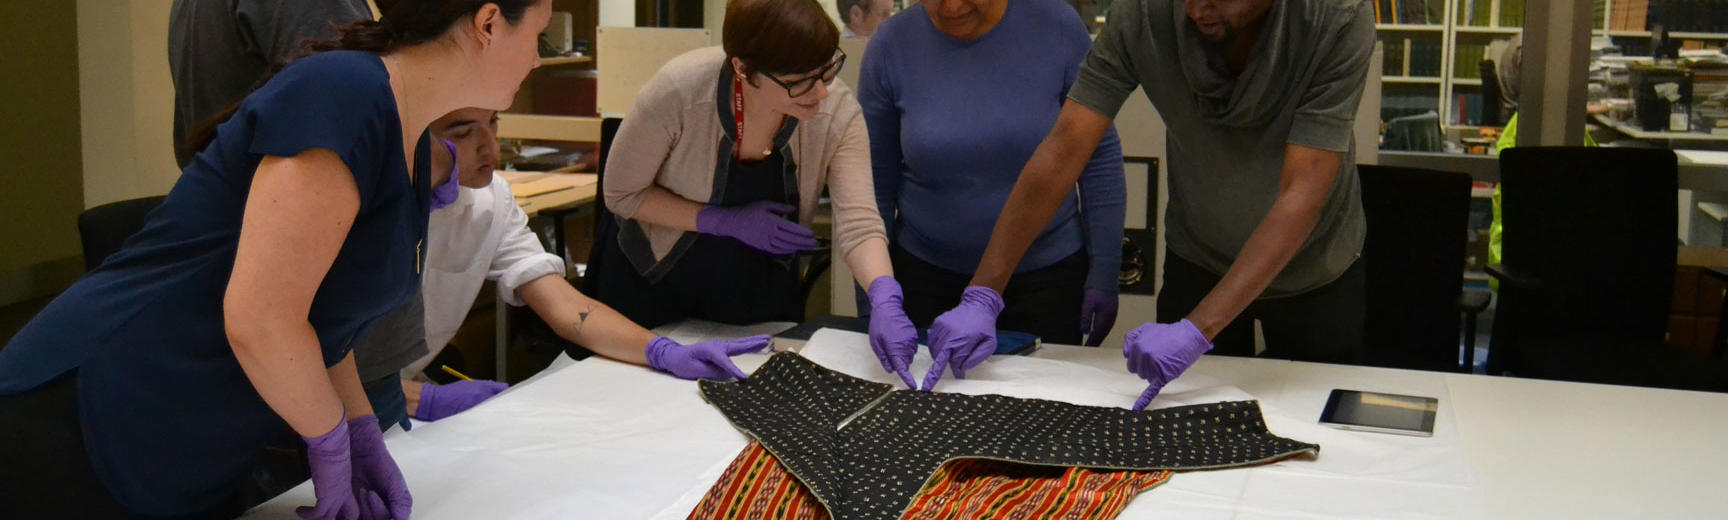 Researchers looking at collections